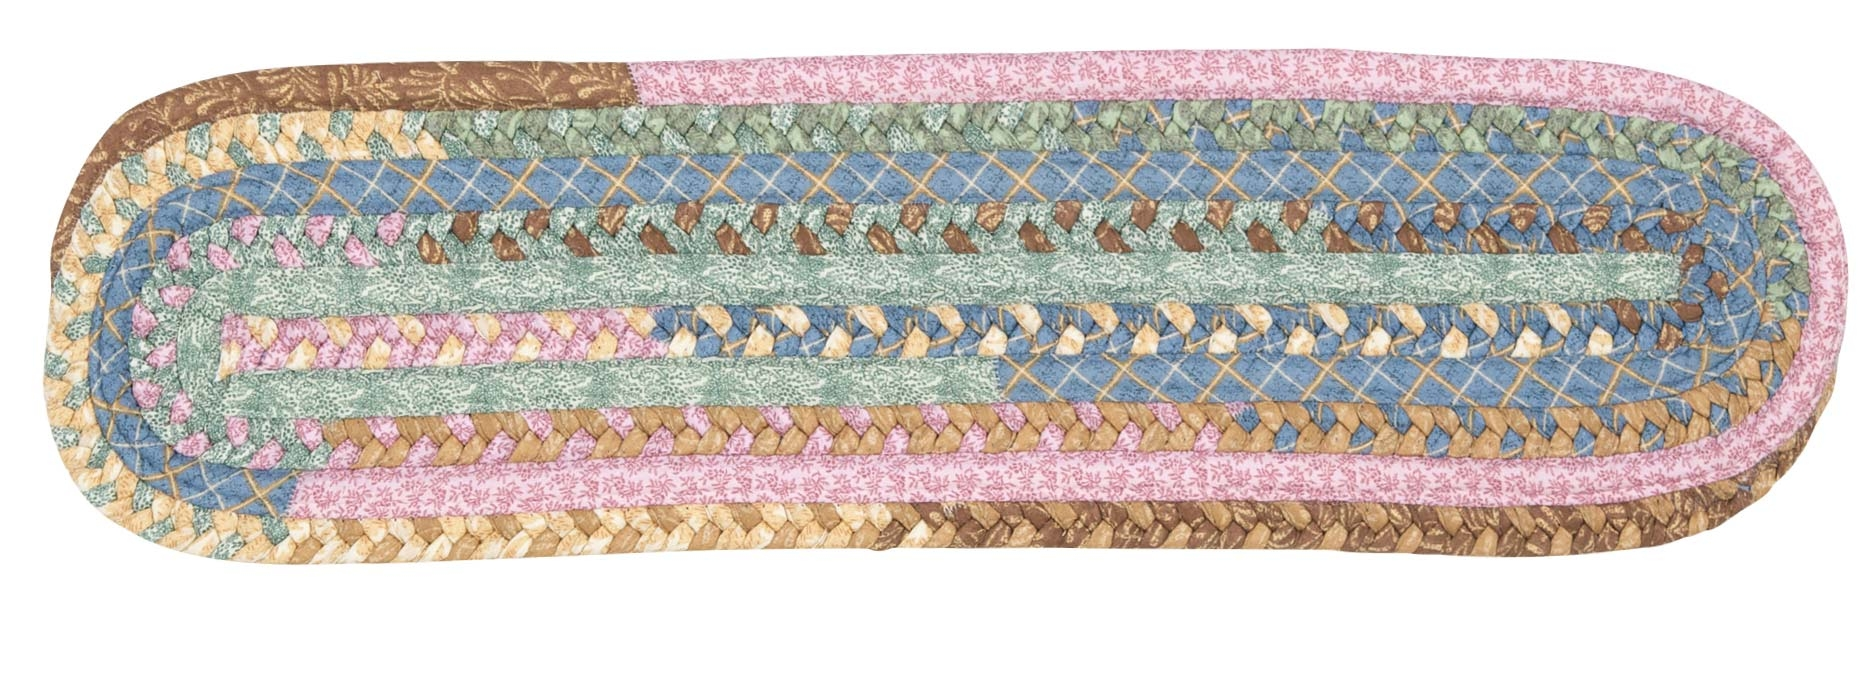 Olivera Stair Treads Colonial Mills Cmi Braided Rugs Outdoor In Stair Treads Braided Rugs (Image 10 of 15)